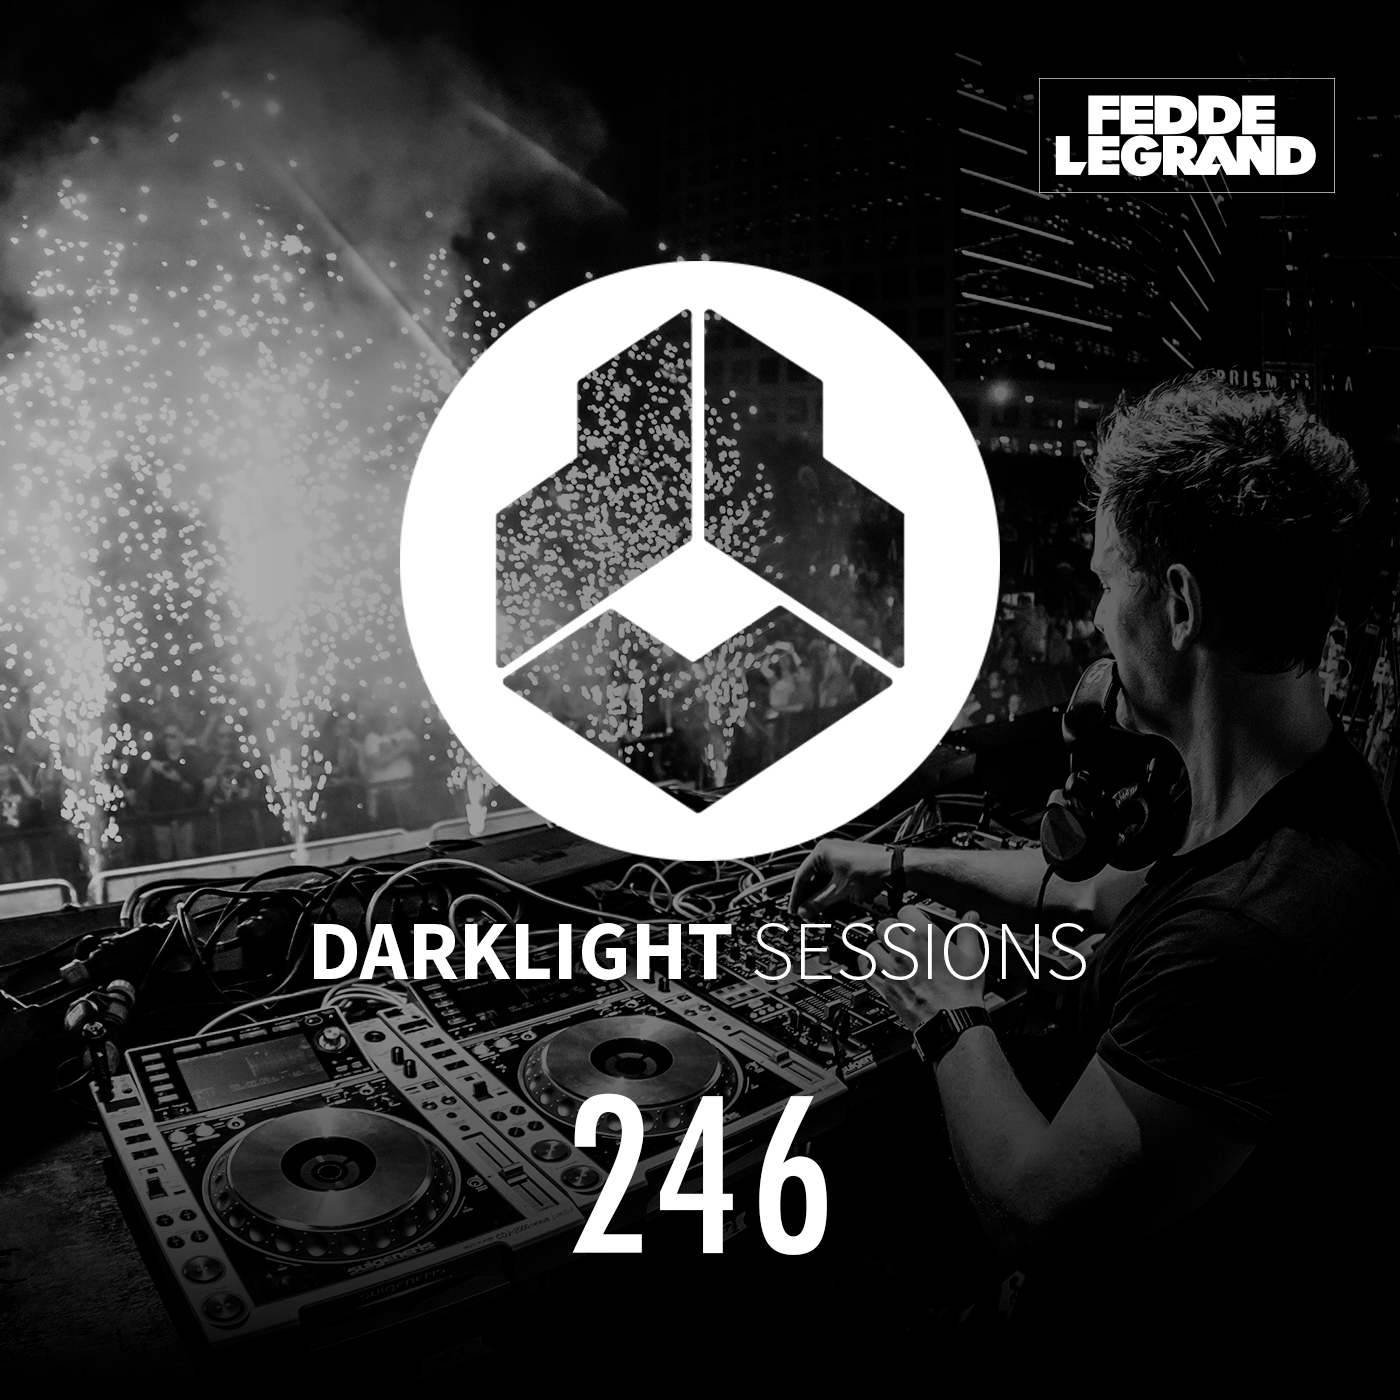 Darklight Sessions 246